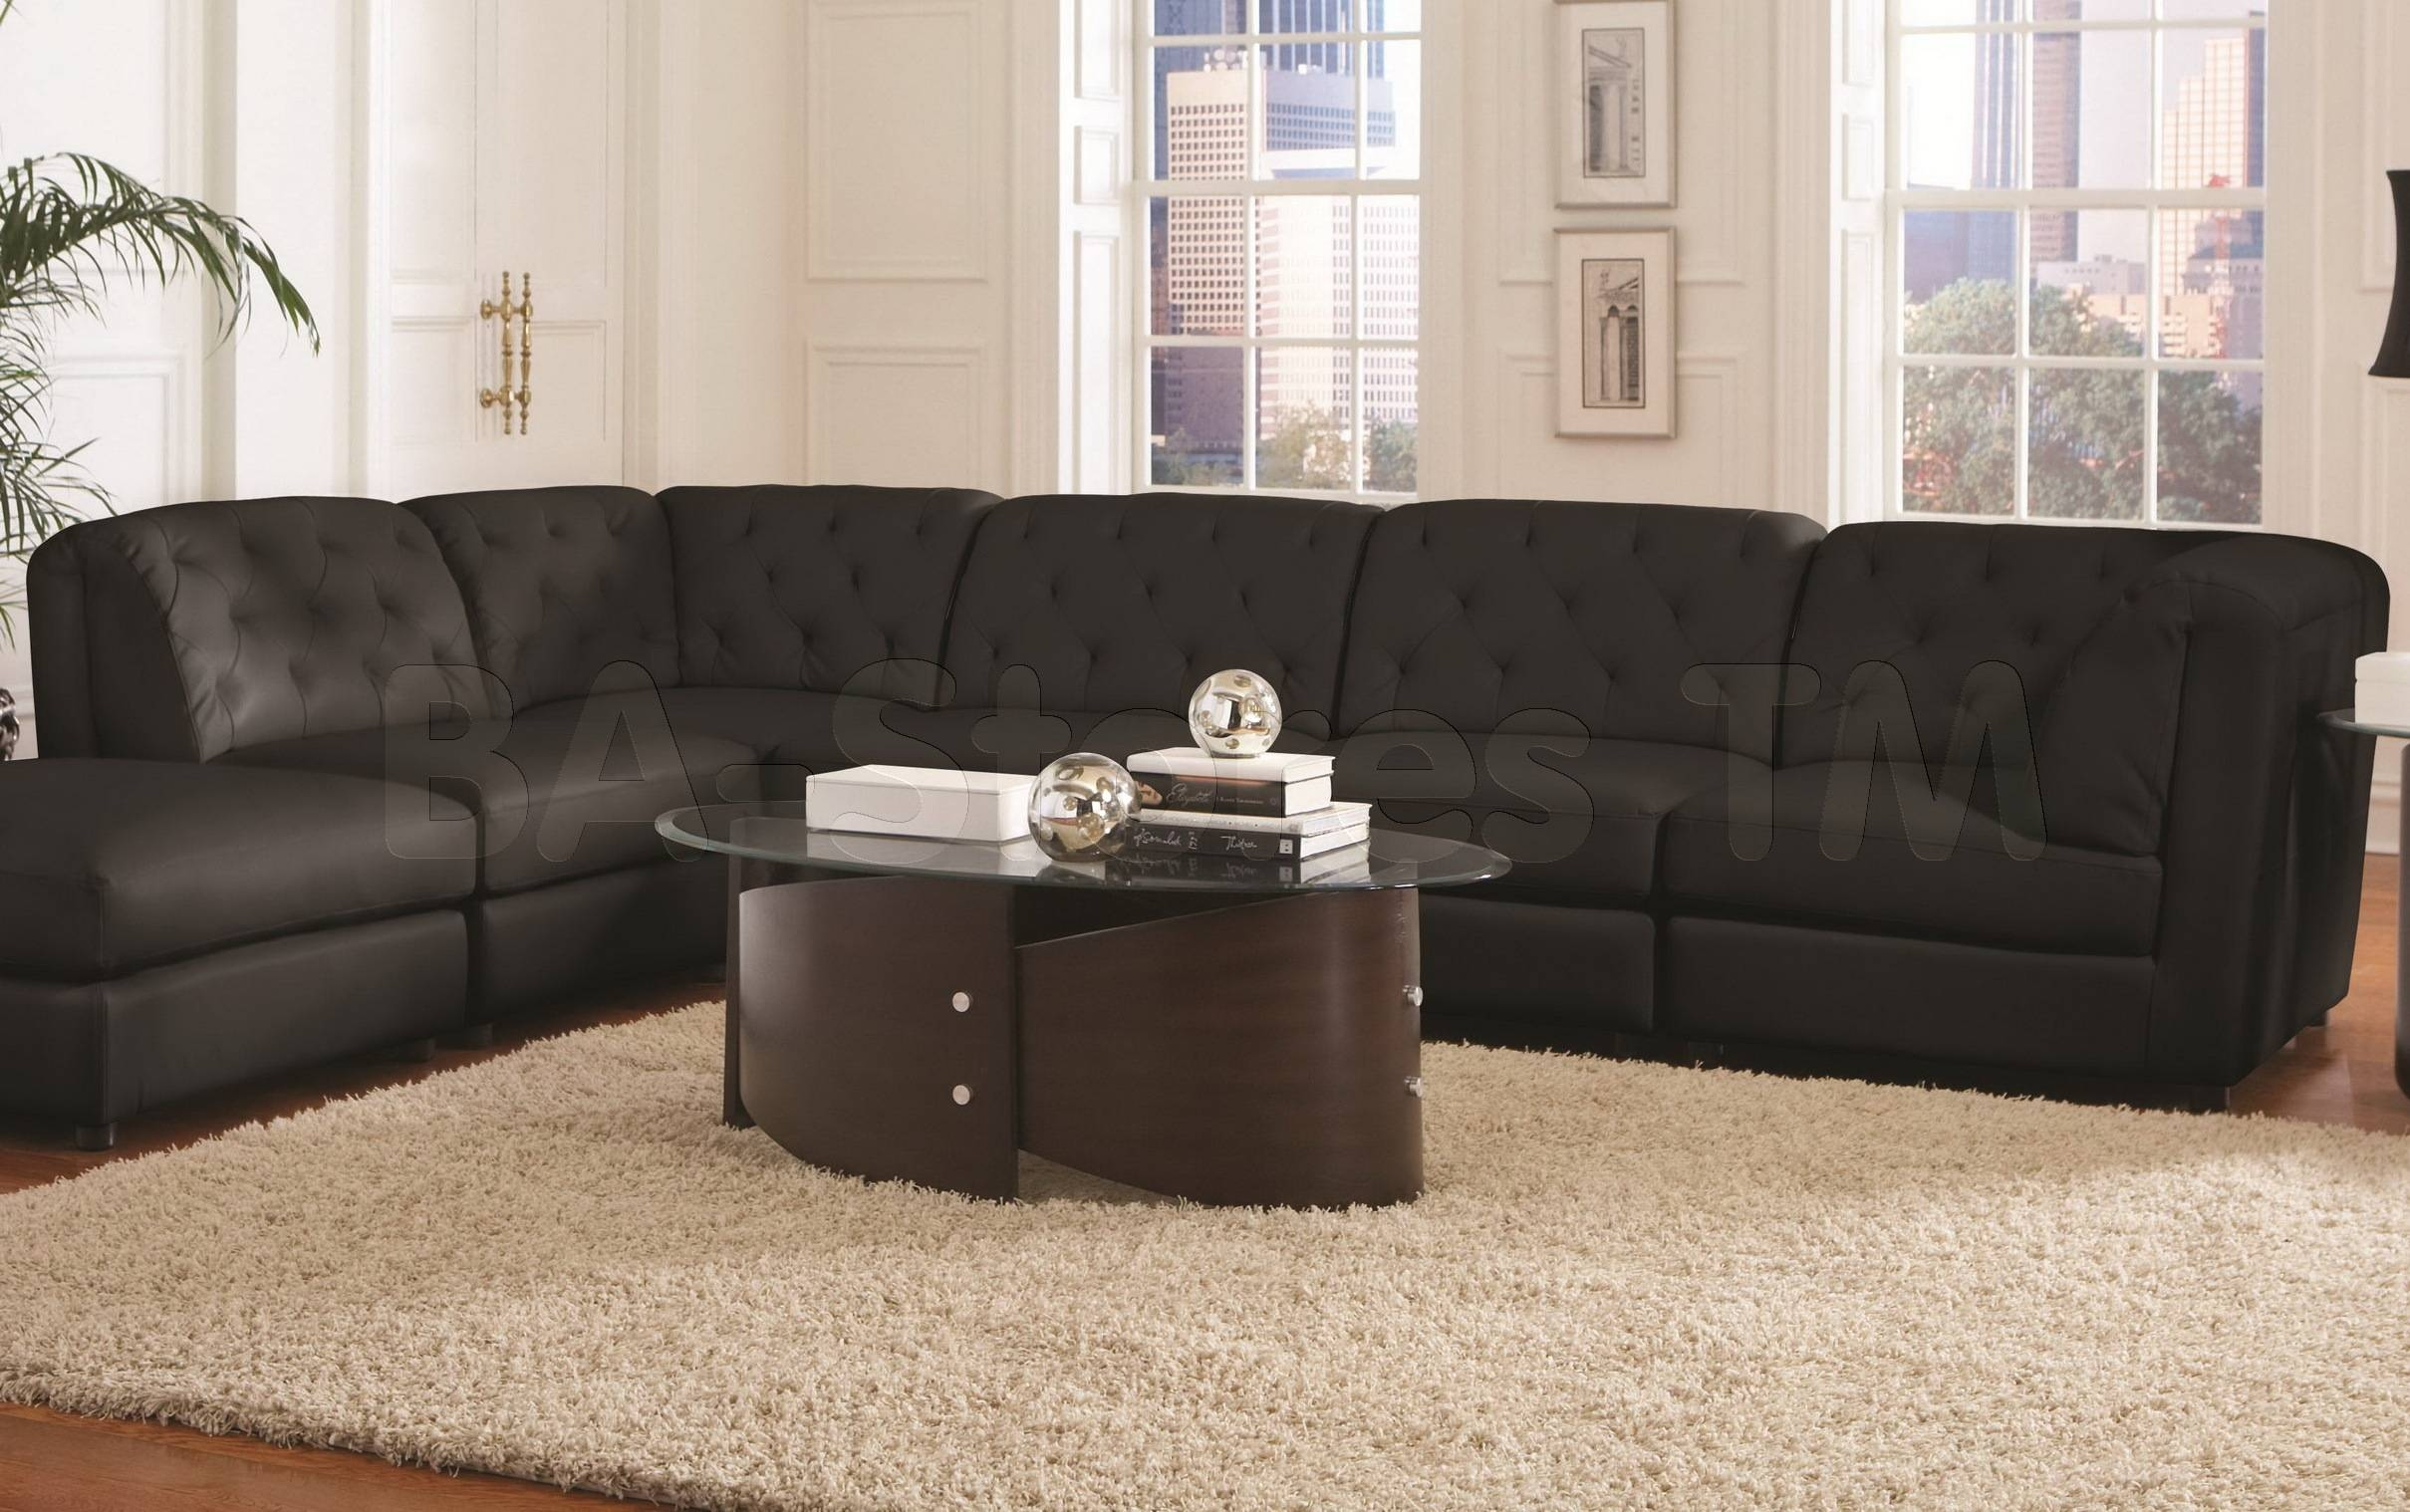 Decorating: Interesting Design Deep Sectional Sofa With Marvelous for Deep Cushioned Sofas (Image 5 of 30)